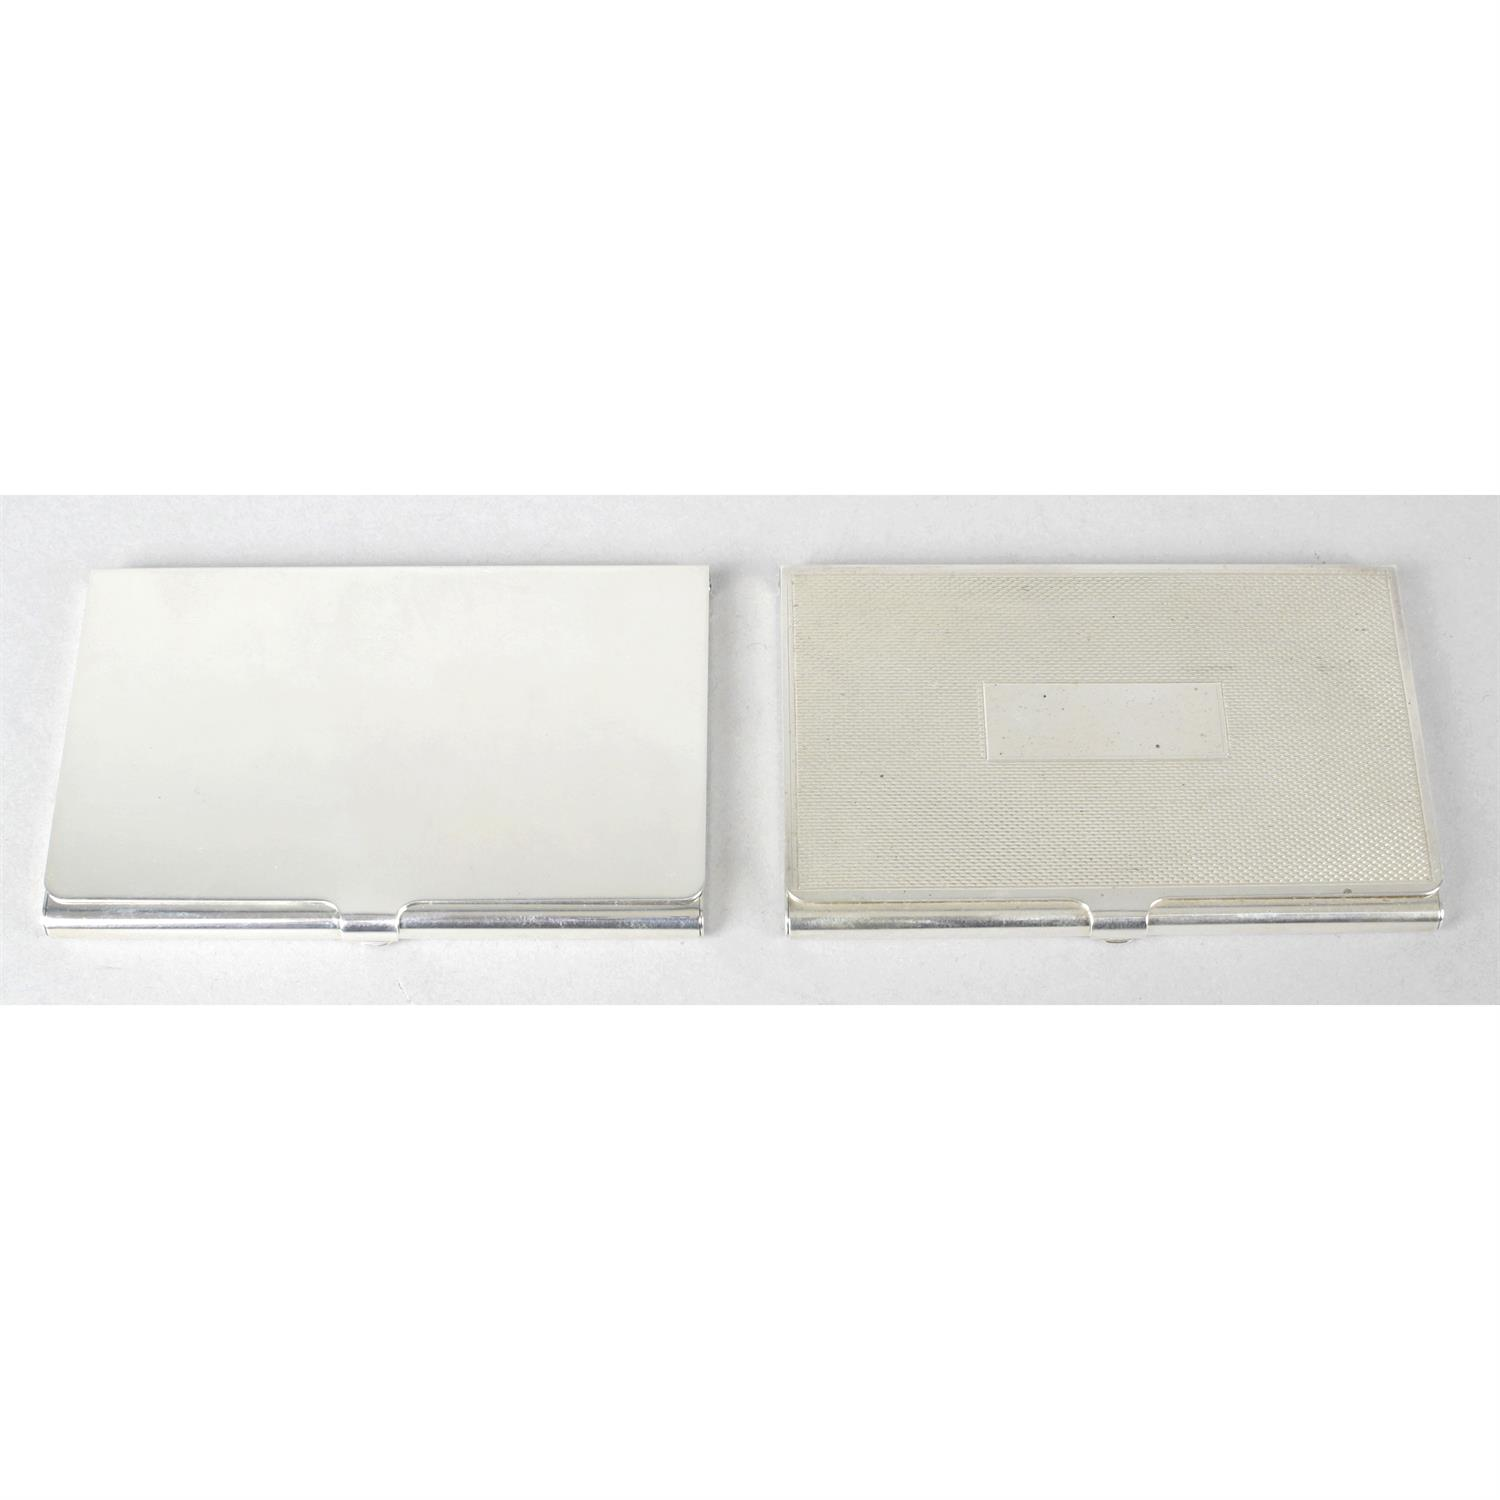 Two silver credit card cases. (2).